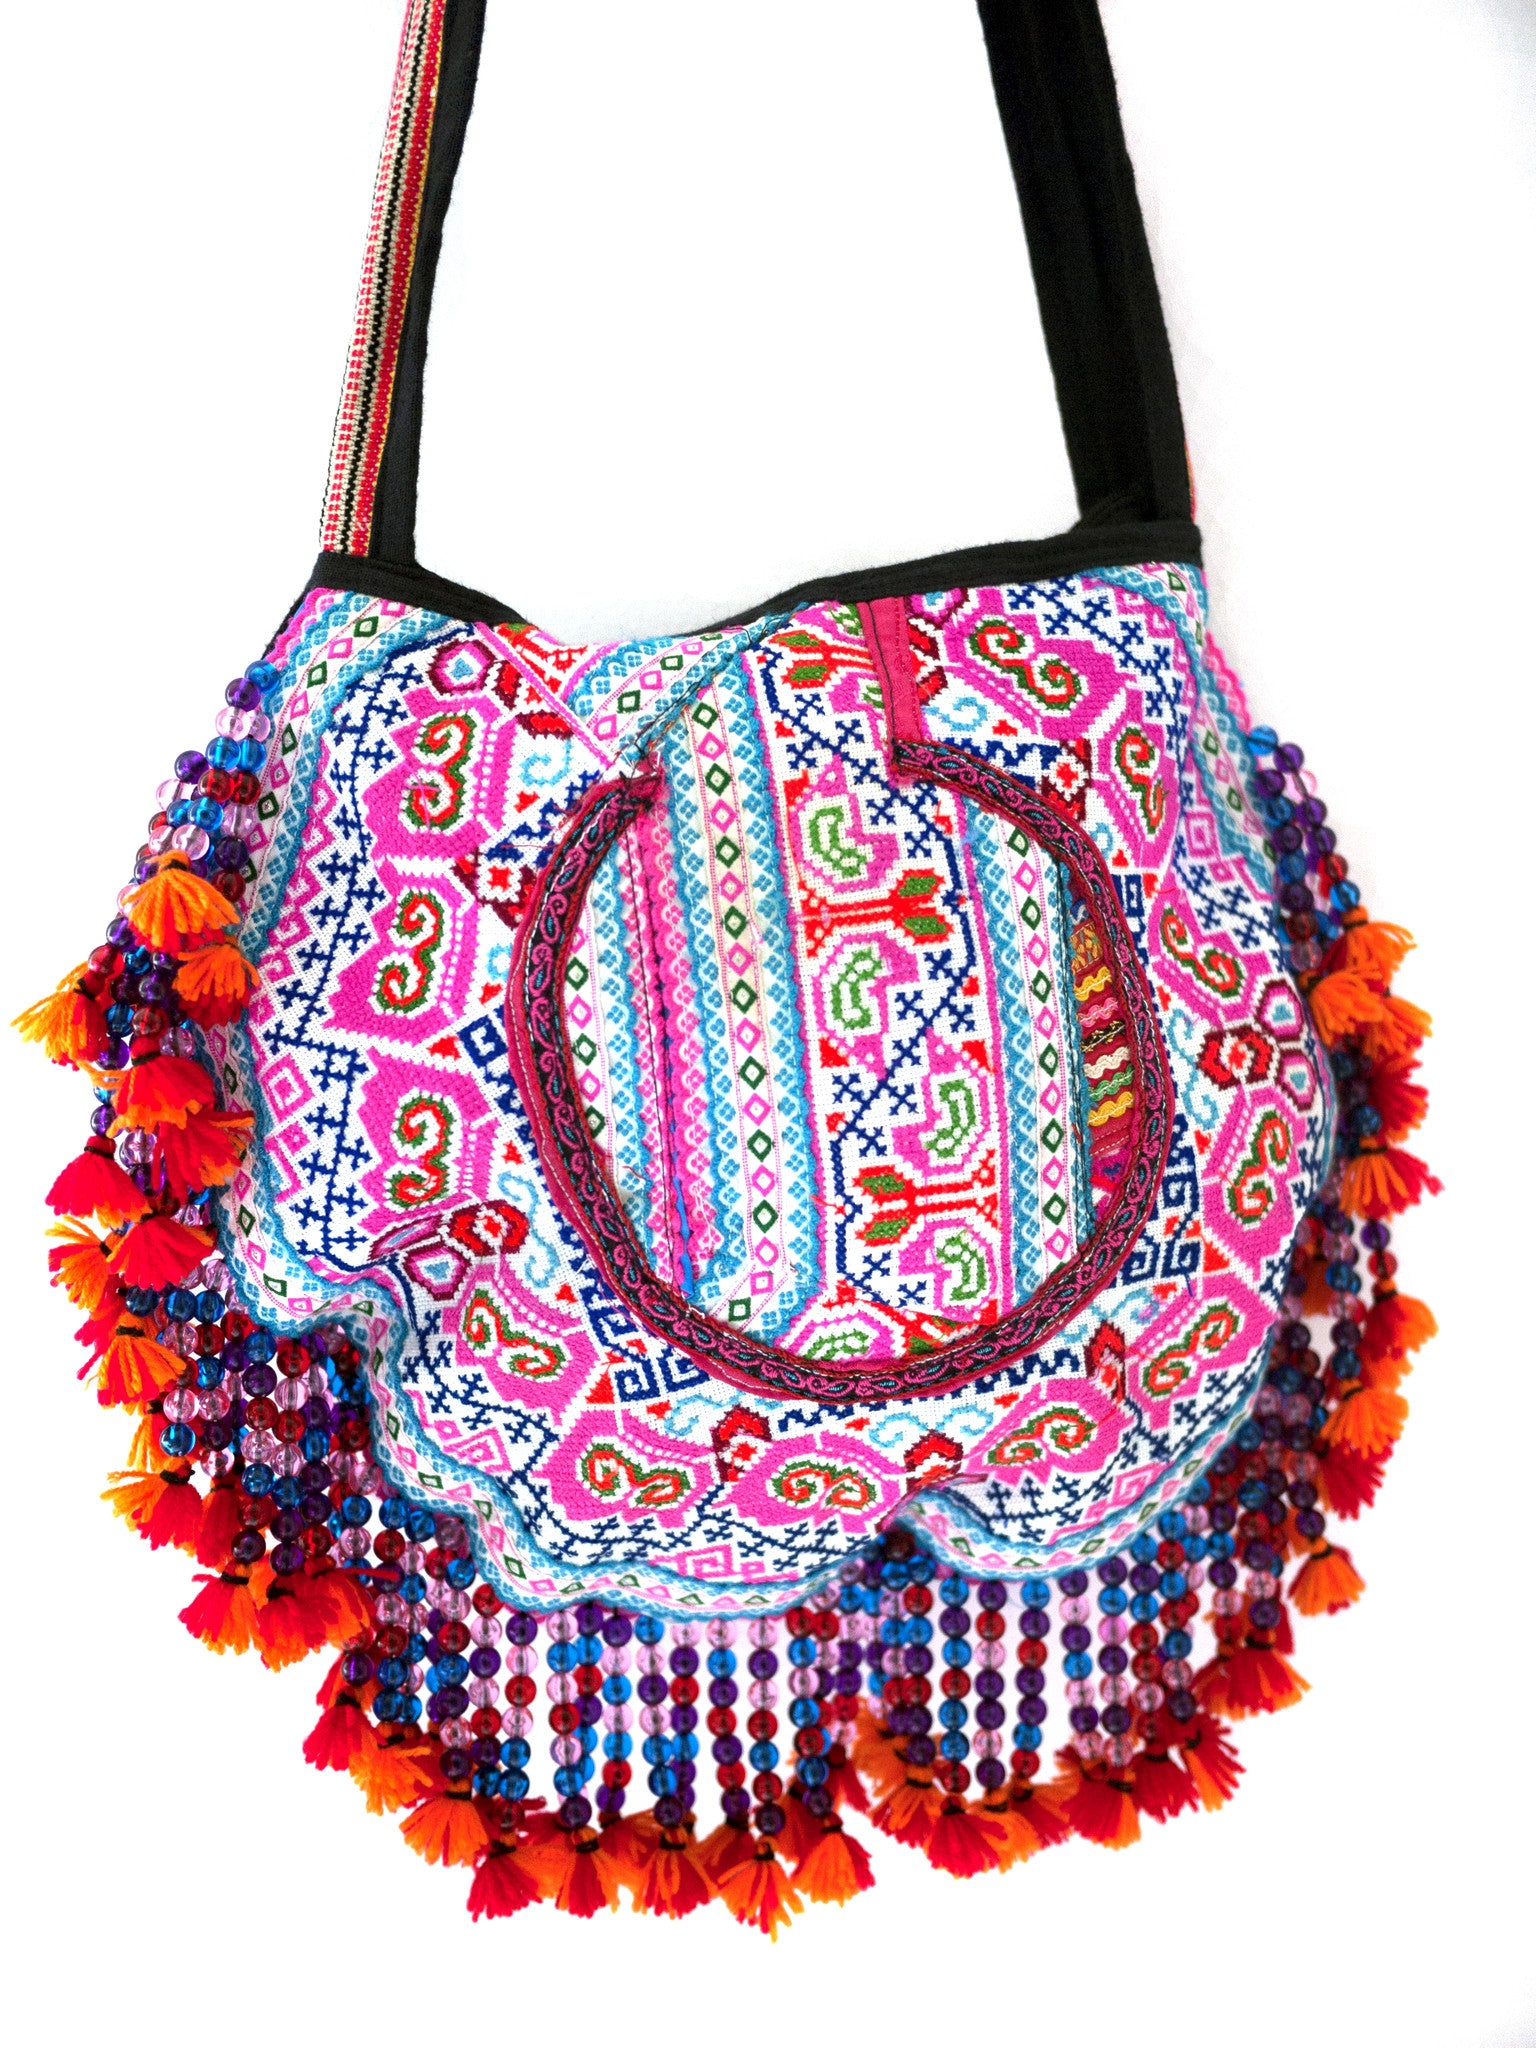 Handmade Hill Tribe Bags with bead work (NC-Crossed body- One Side- embroidery) - CCCollections